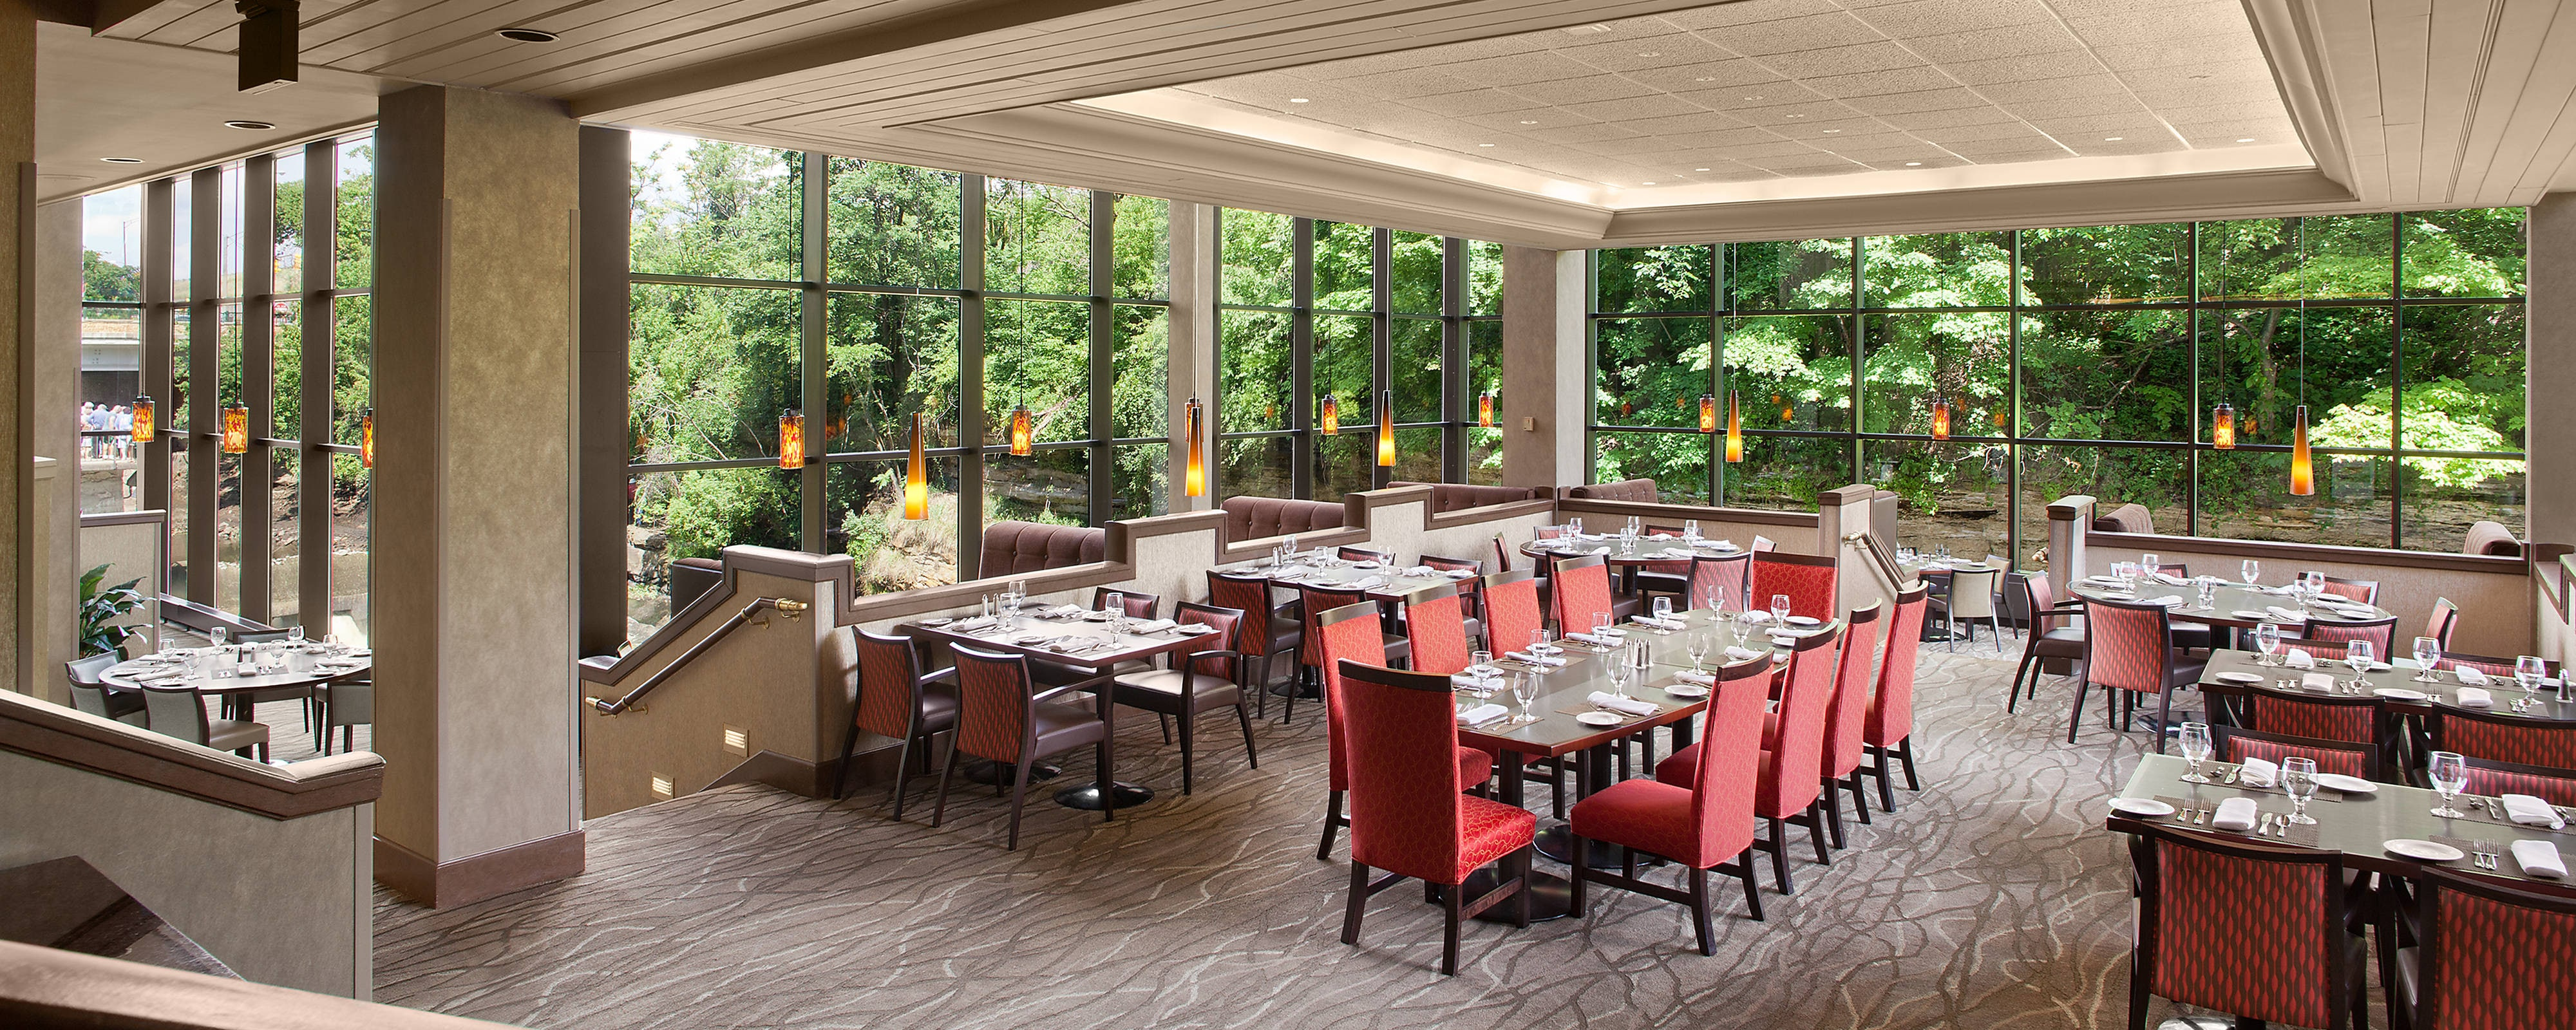 Cuyahoga Hotels with Dining & Restaurants | Sheraton Suites